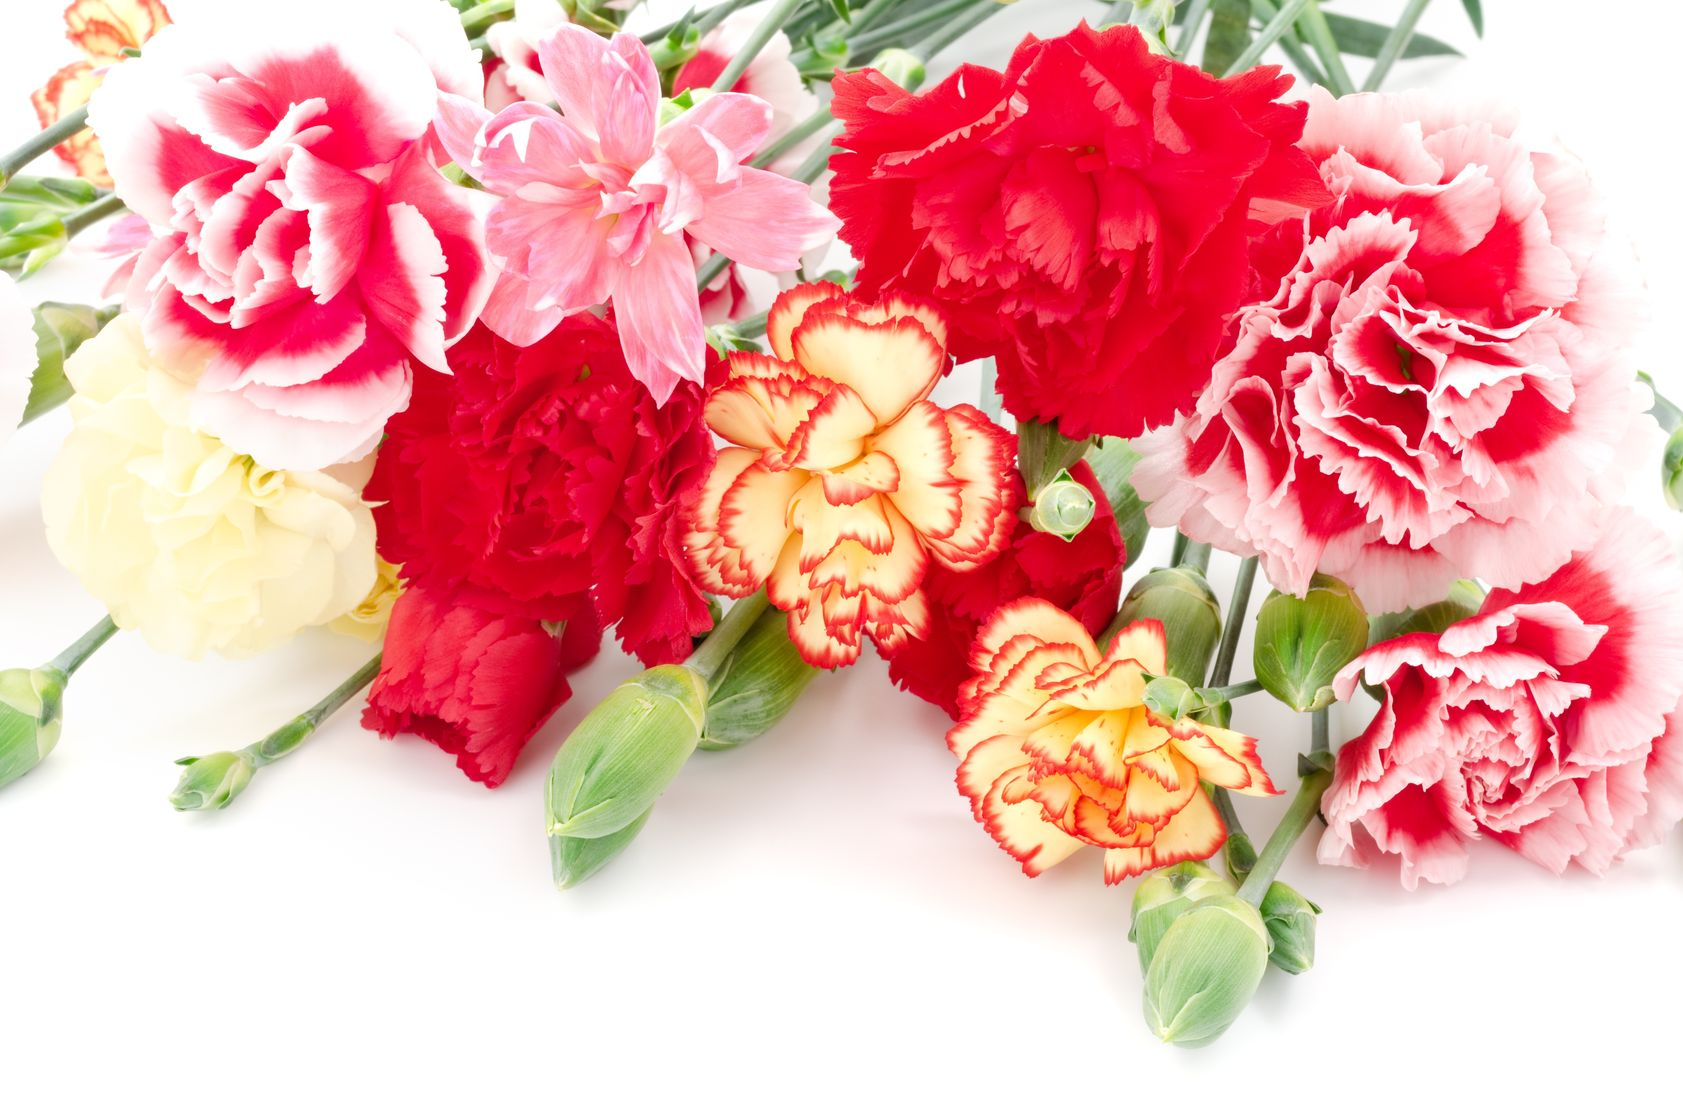 Different kinds of carnations